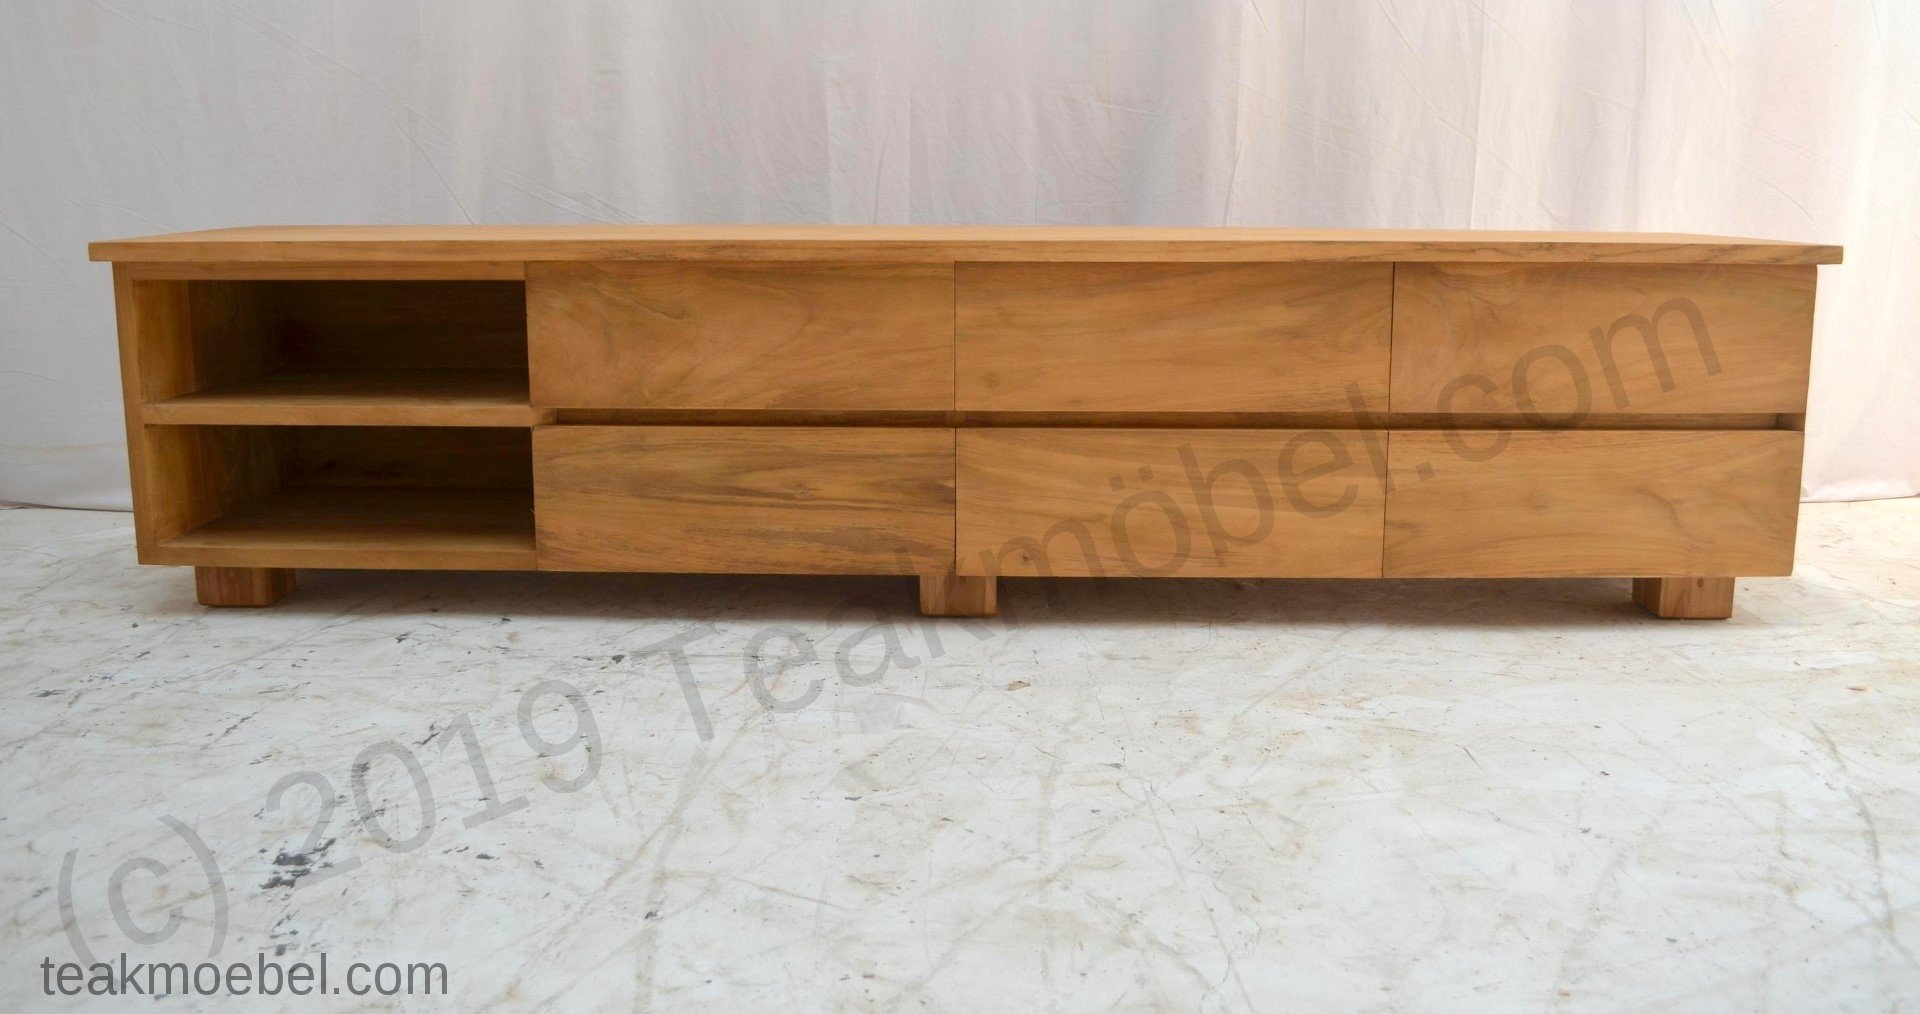 teak fernsehmoebel 220cm massanfertigung teakm. Black Bedroom Furniture Sets. Home Design Ideas